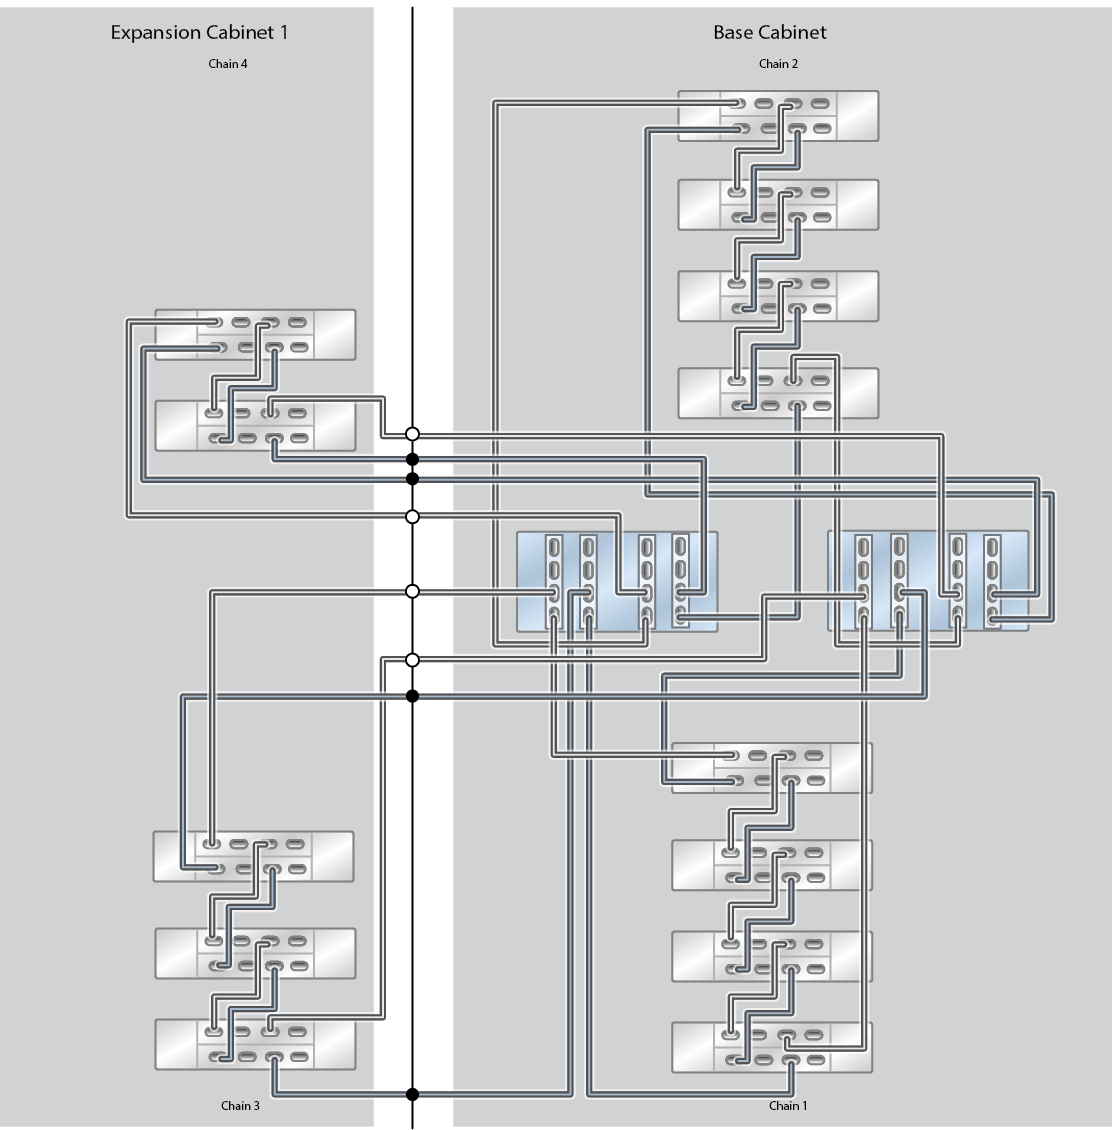 Cabling Tables And Diagrams For Zs5 4 Racked System